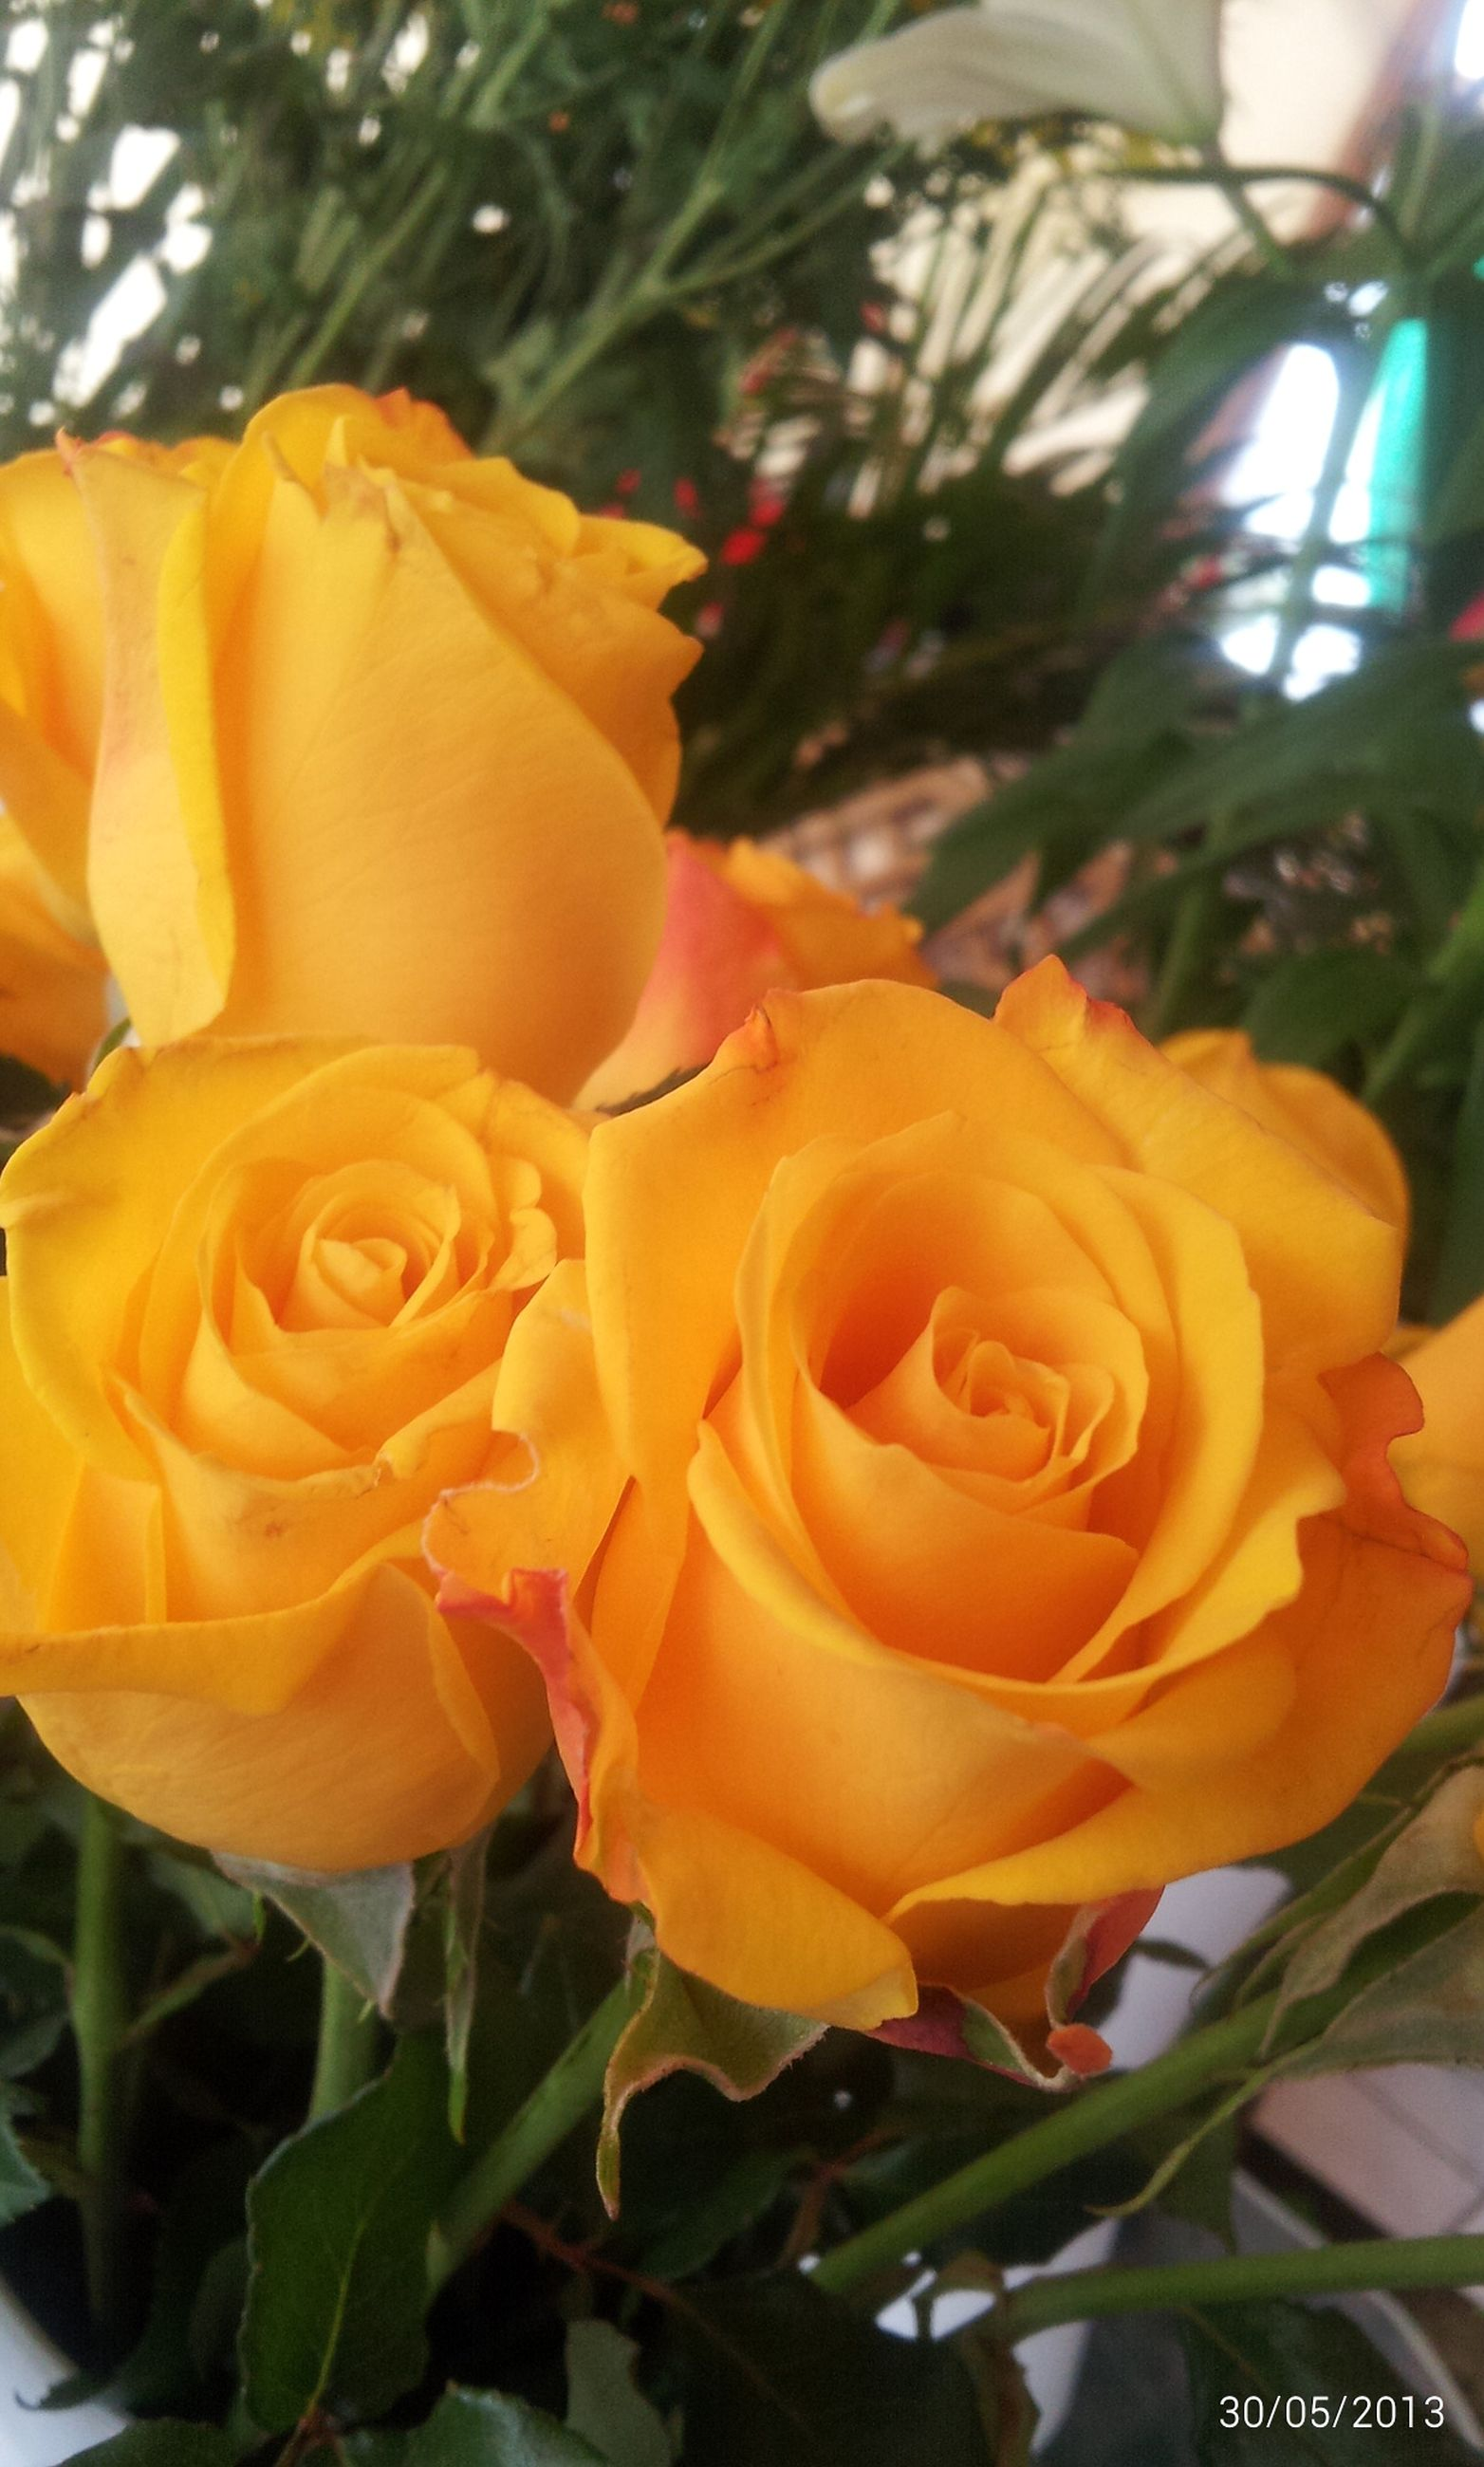 flower, petal, flower head, fragility, freshness, rose - flower, growth, beauty in nature, blooming, close-up, plant, nature, yellow, focus on foreground, in bloom, single flower, park - man made space, leaf, rose, blossom